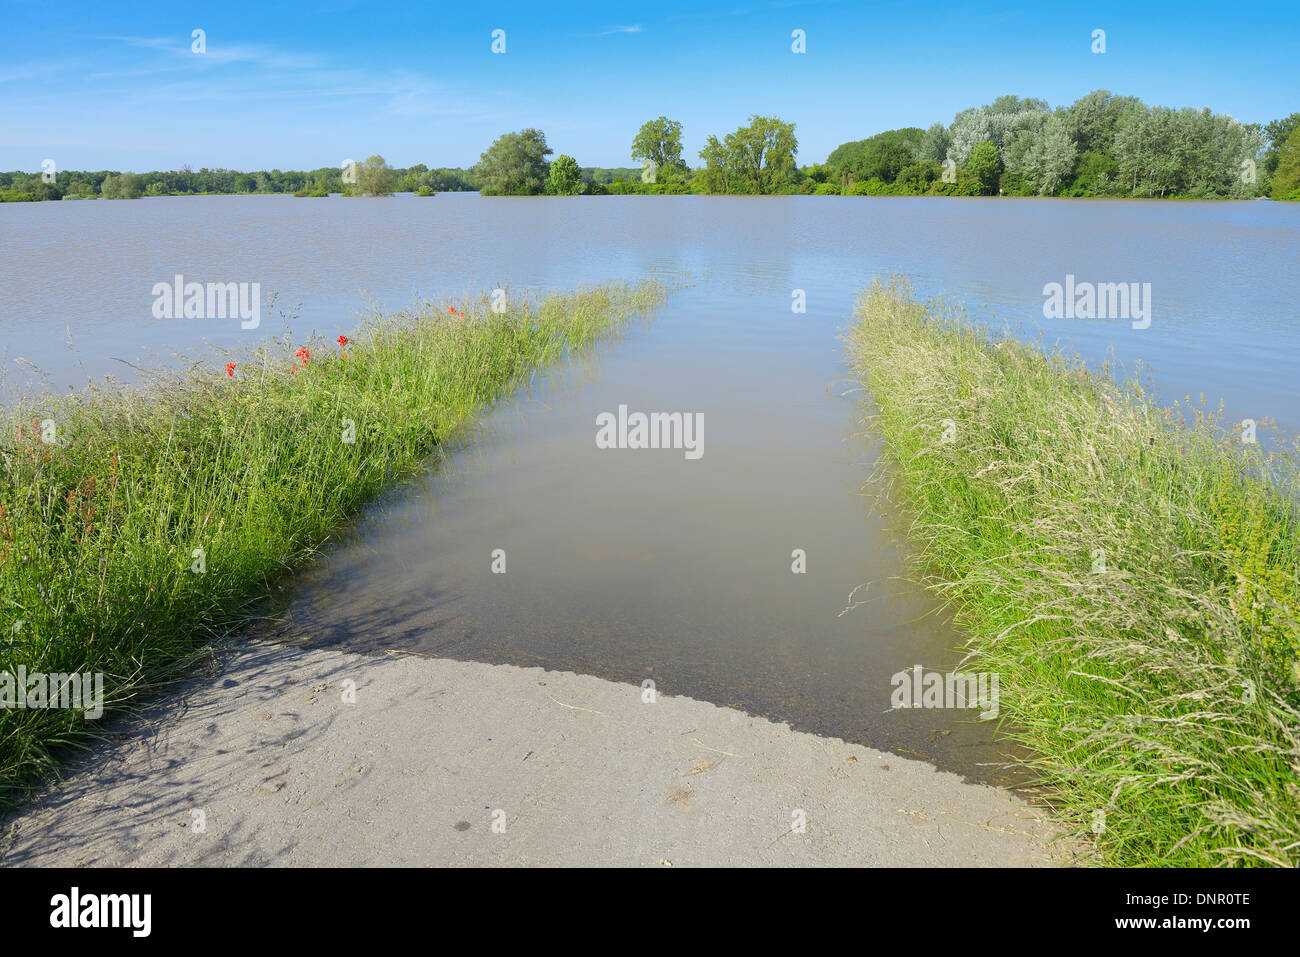 Flooded Area, Nature Reserve Kuehkopf-Knoblochsaue, Hesse, Germany, Europe Stock Photo